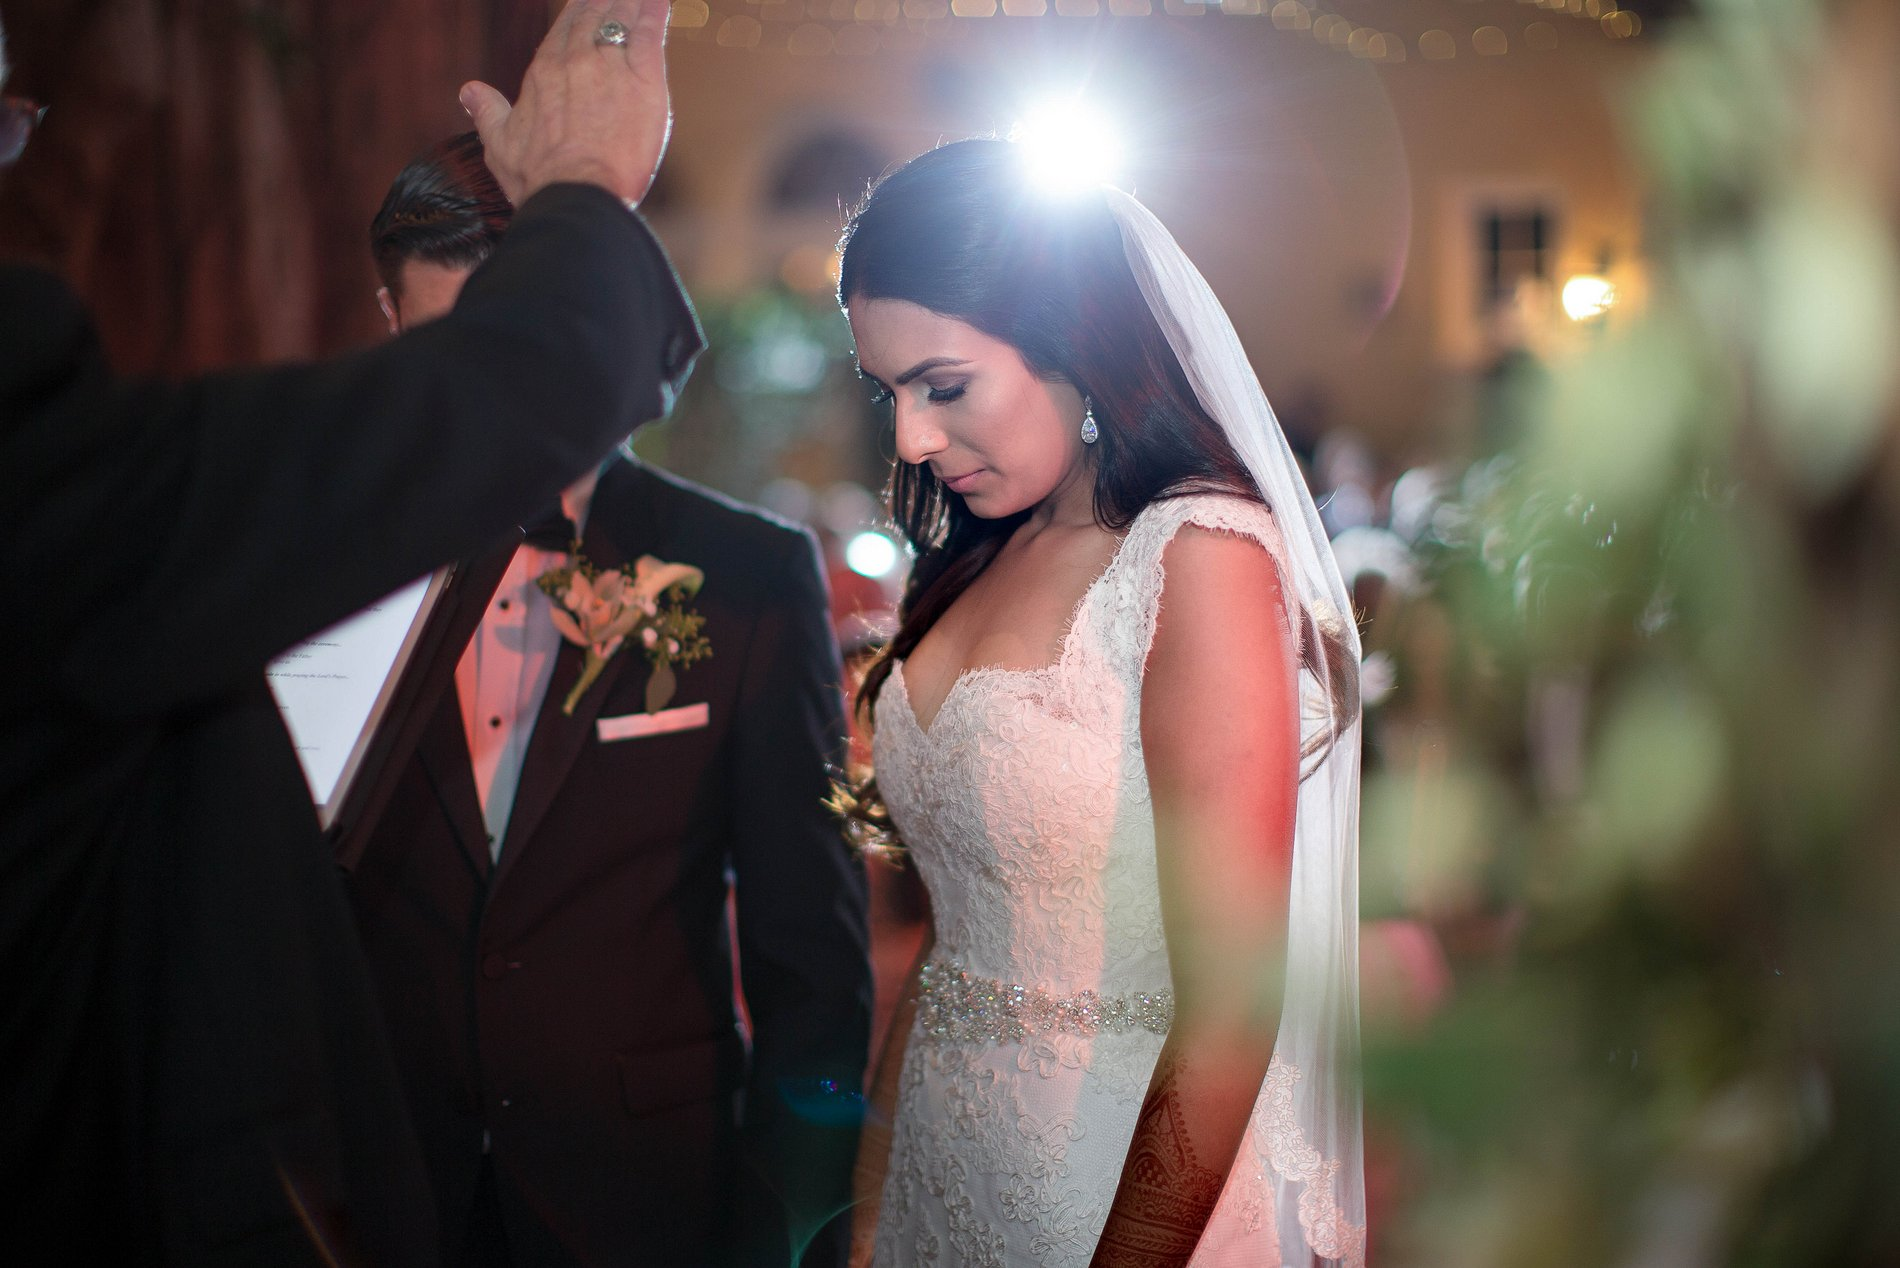 Kinjal + Sebastian | Adisson, Boca Raton – Florida Indian Wedding Photographers, Miami Wedding Photographers | Häring Photography, Indian Wedding Photographer in Florida, Best Muslim, Hindu - South East Asian Wedding Photographers